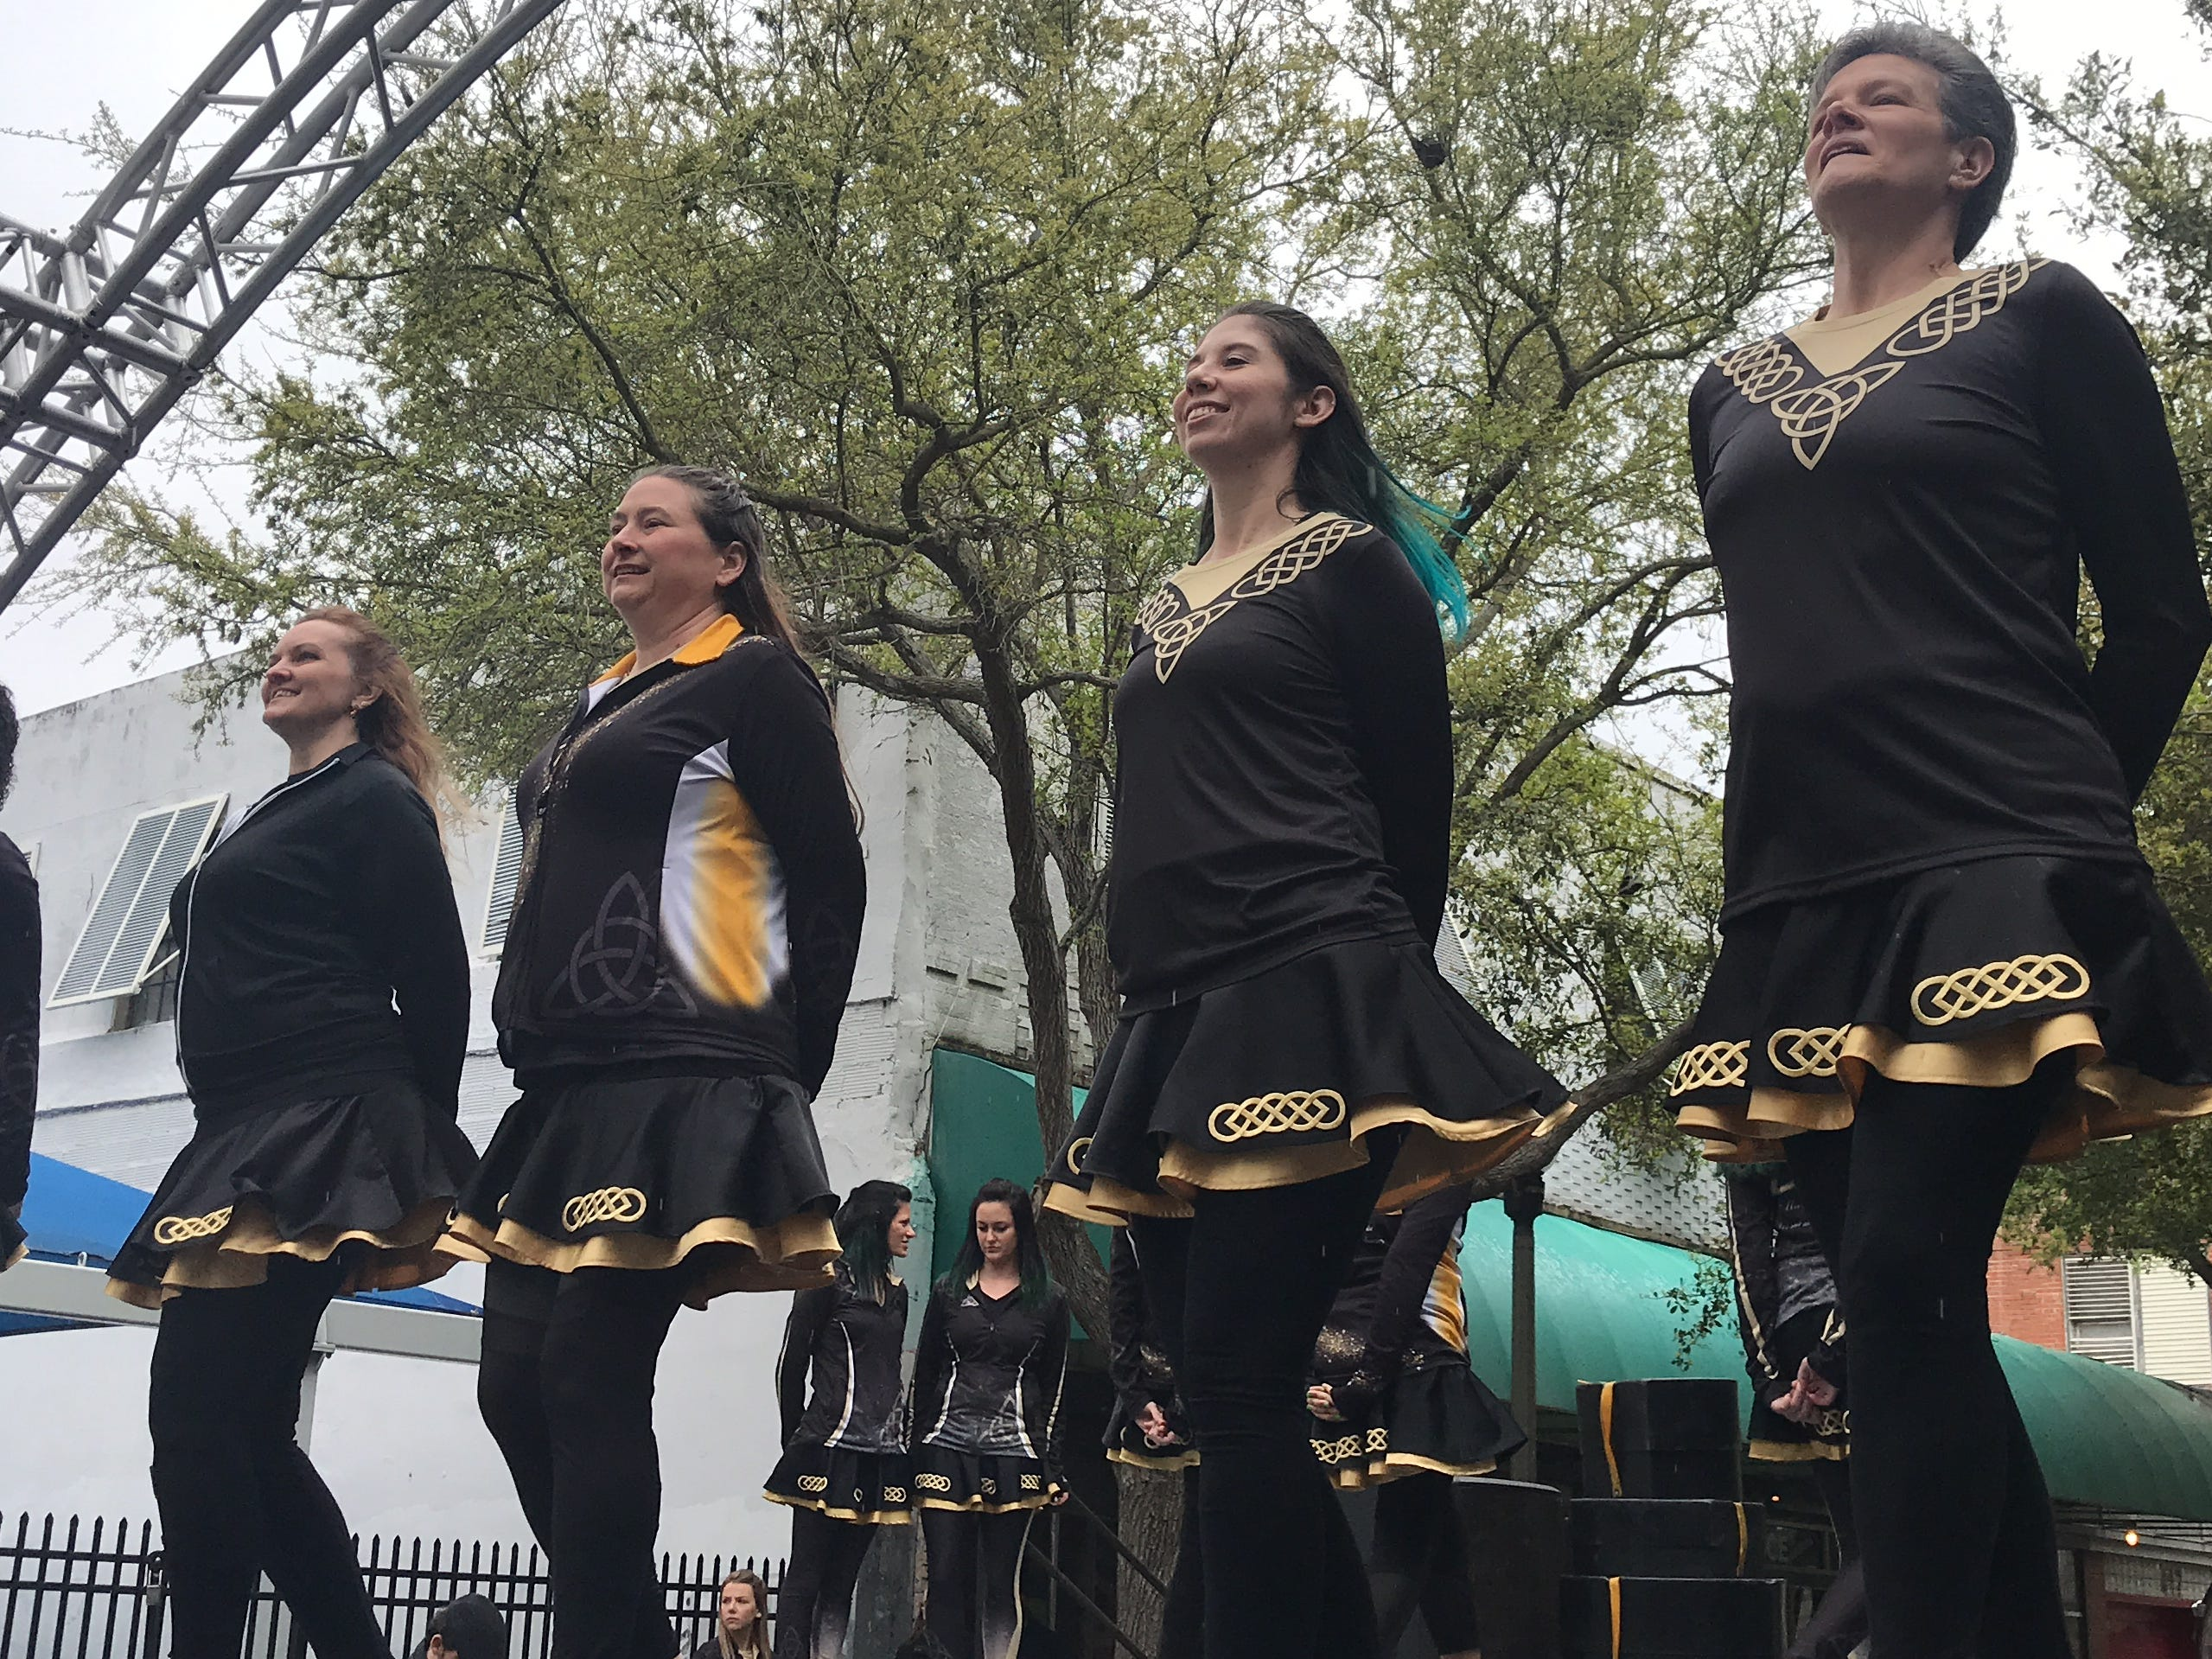 The Gildea School of Irish Dance performed at the 8th annual St. Paddy's Day Festival in downtown Corpus Christi Saturday, March 16, 2019.